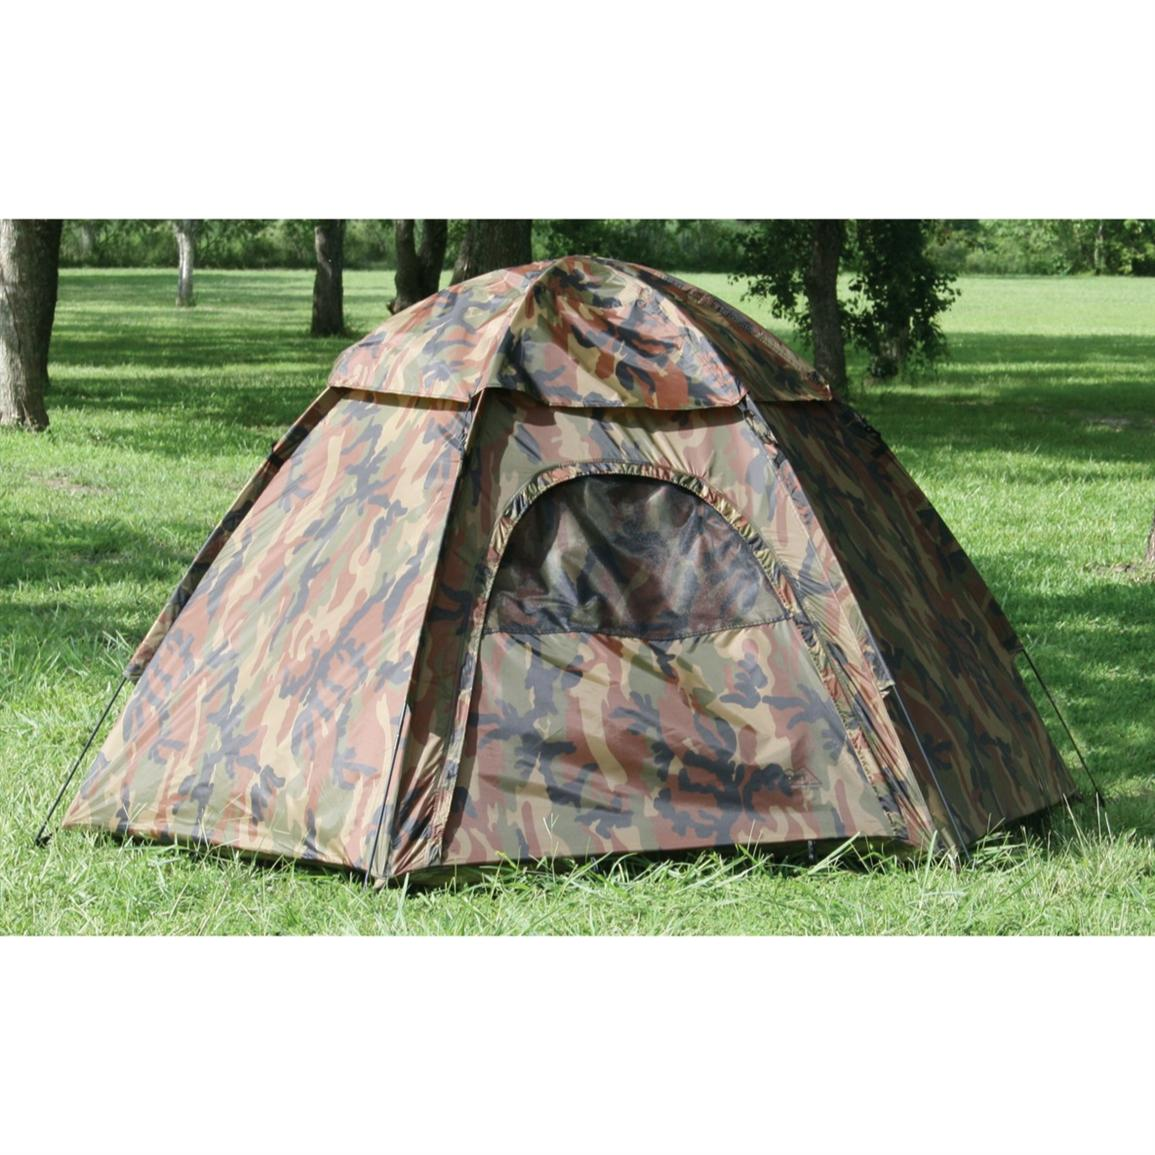 Texsport® Hide-A-Way Camouflage 3-person Dome Tent with Rainfly